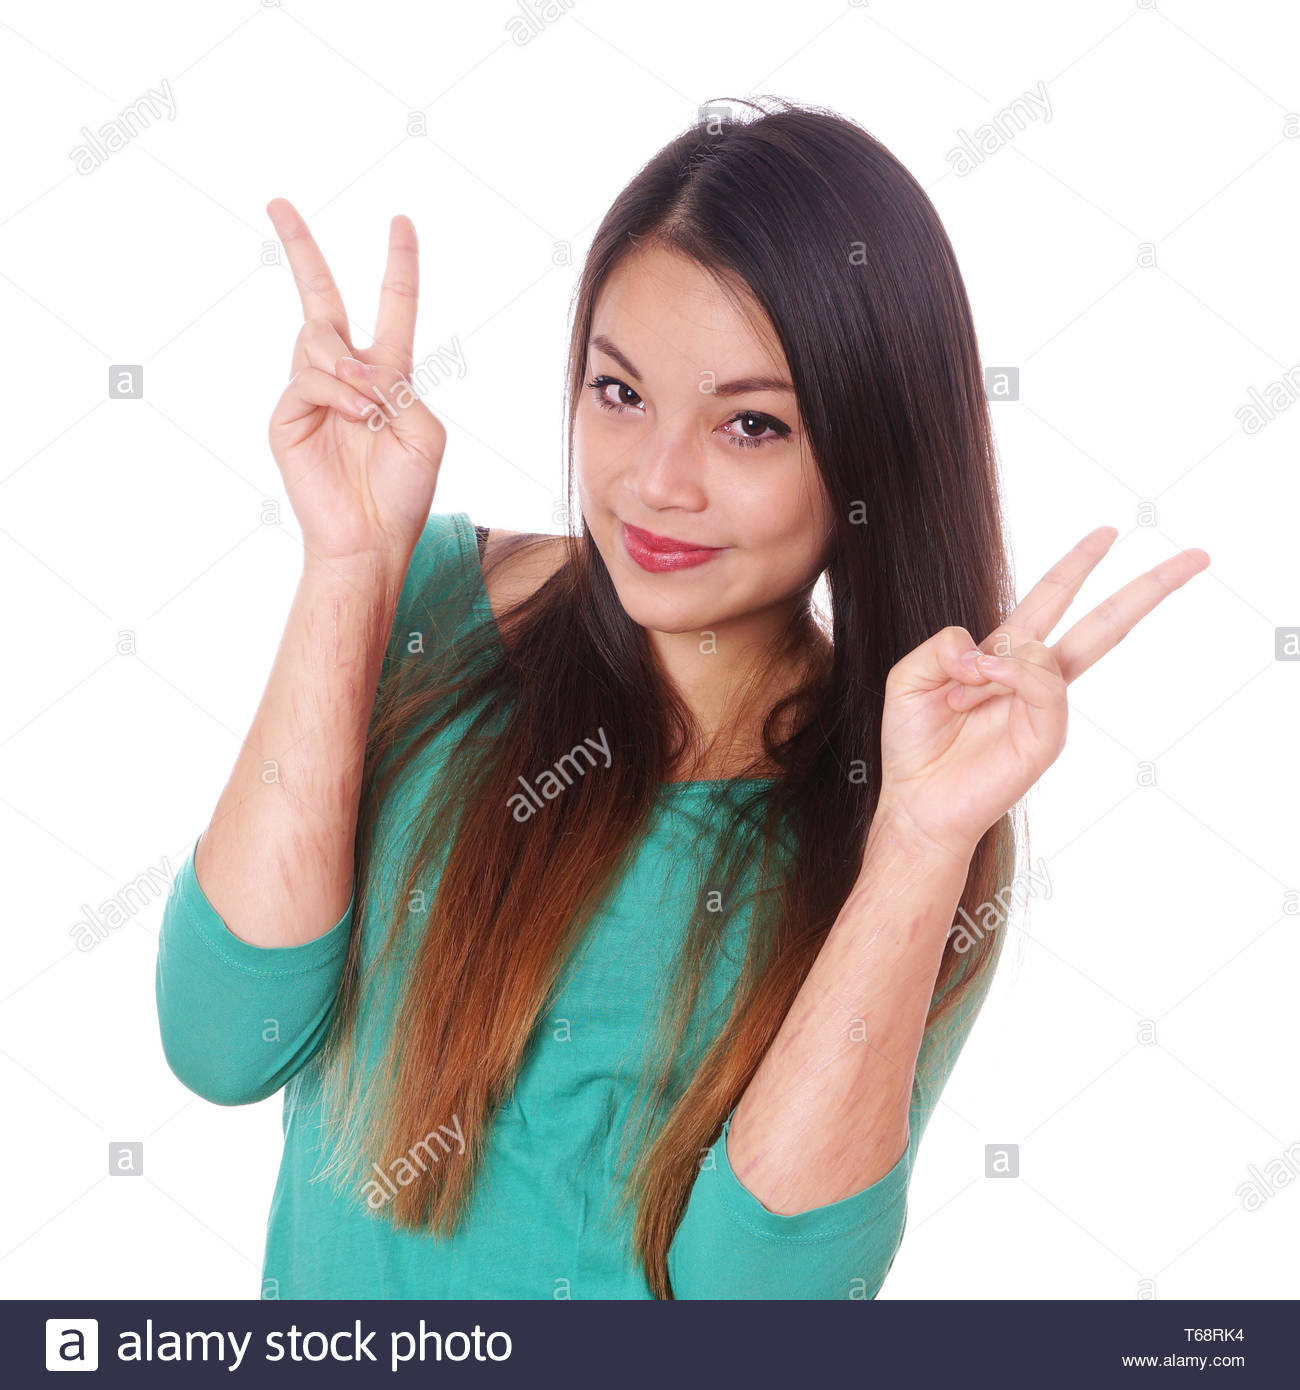 girl with scars from self-harm making victory sign - Stock Image